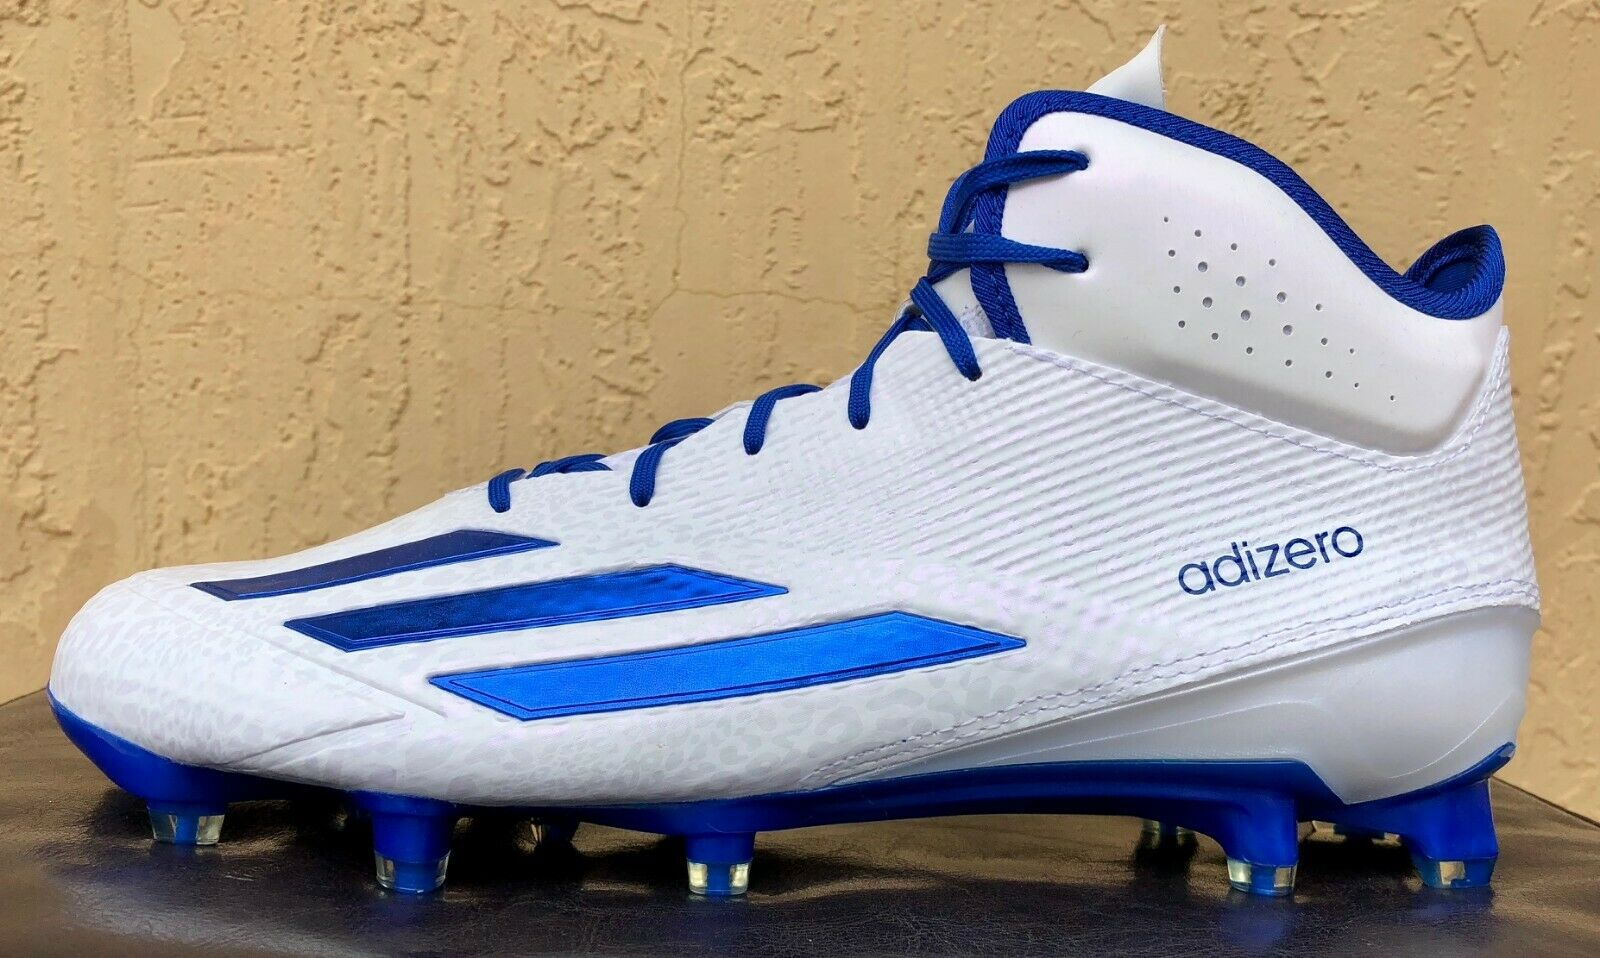 46fbc906f Mens Adidas adizero 5-Star 5.0 Mid Football Cleats Size 10.5 or 12.5 White  bluee